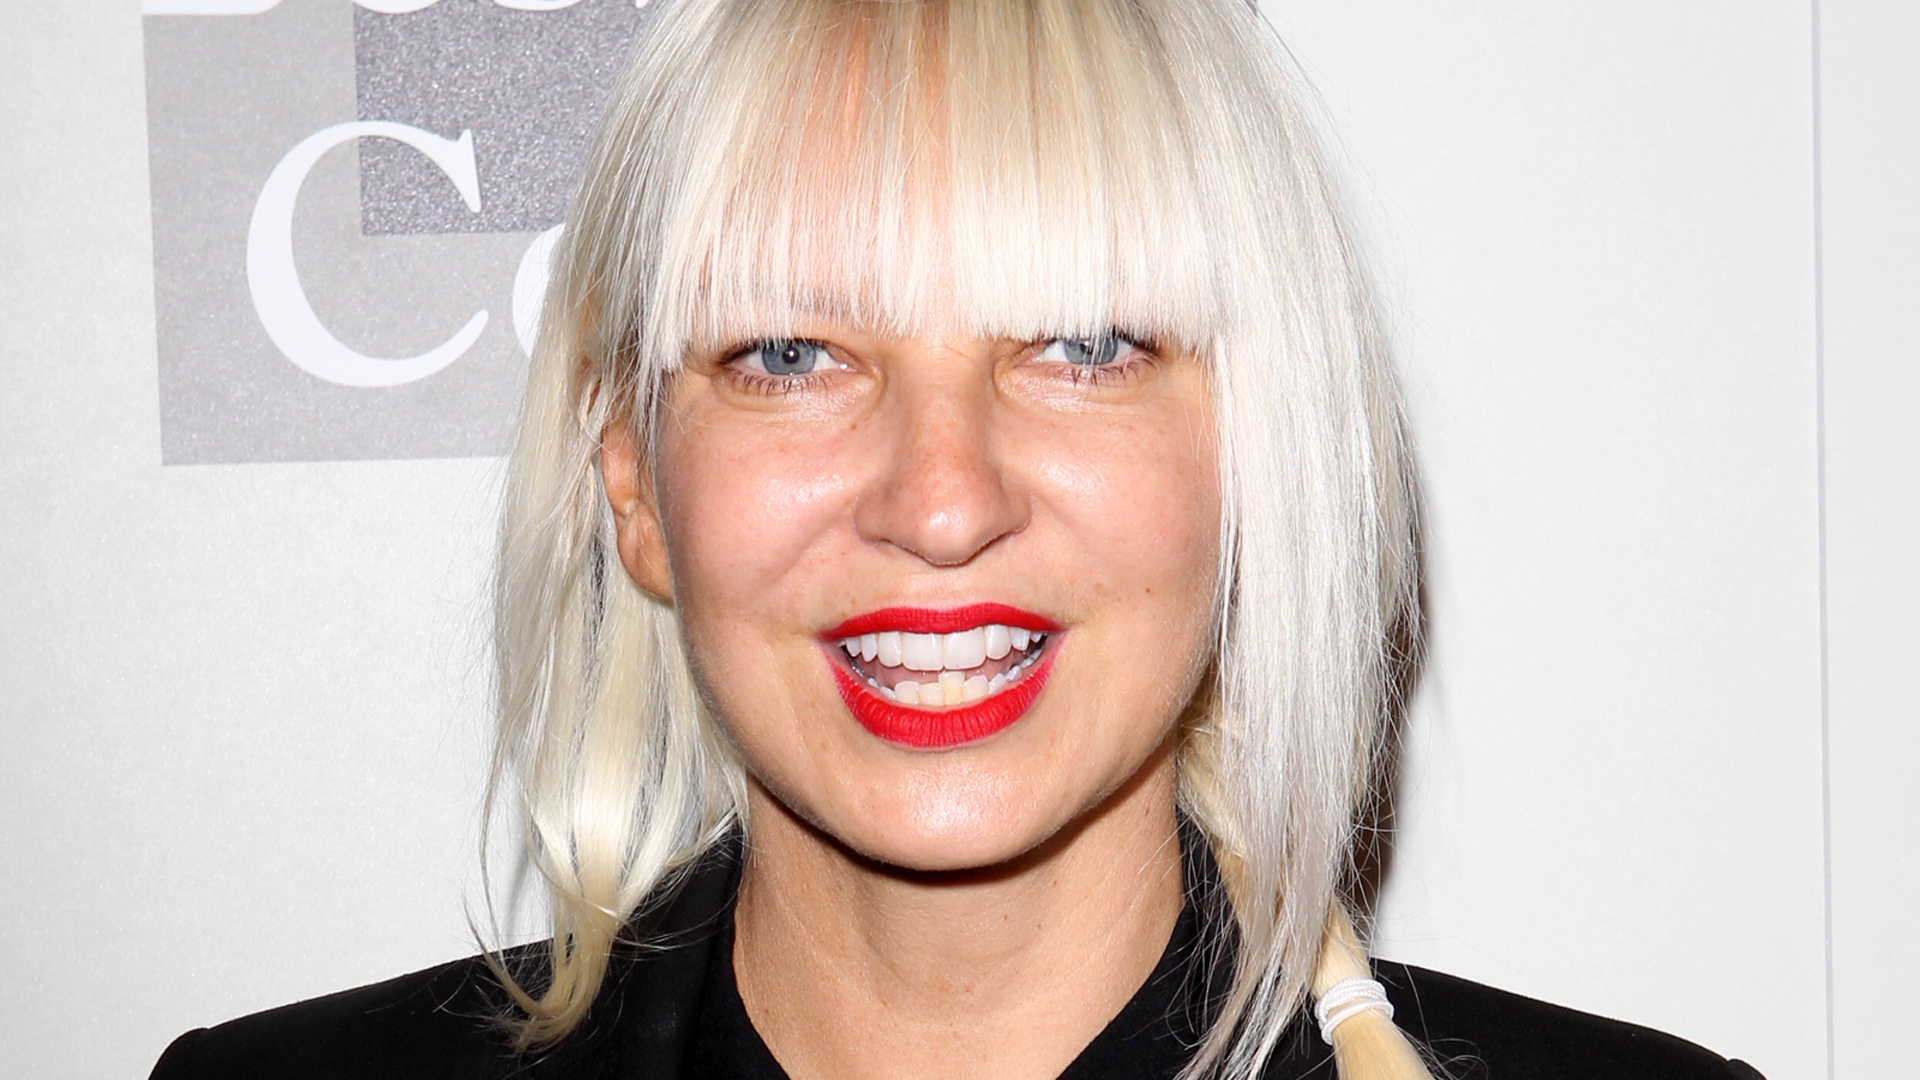 Sia wallpapers images photos pictures backgrounds for Sia download